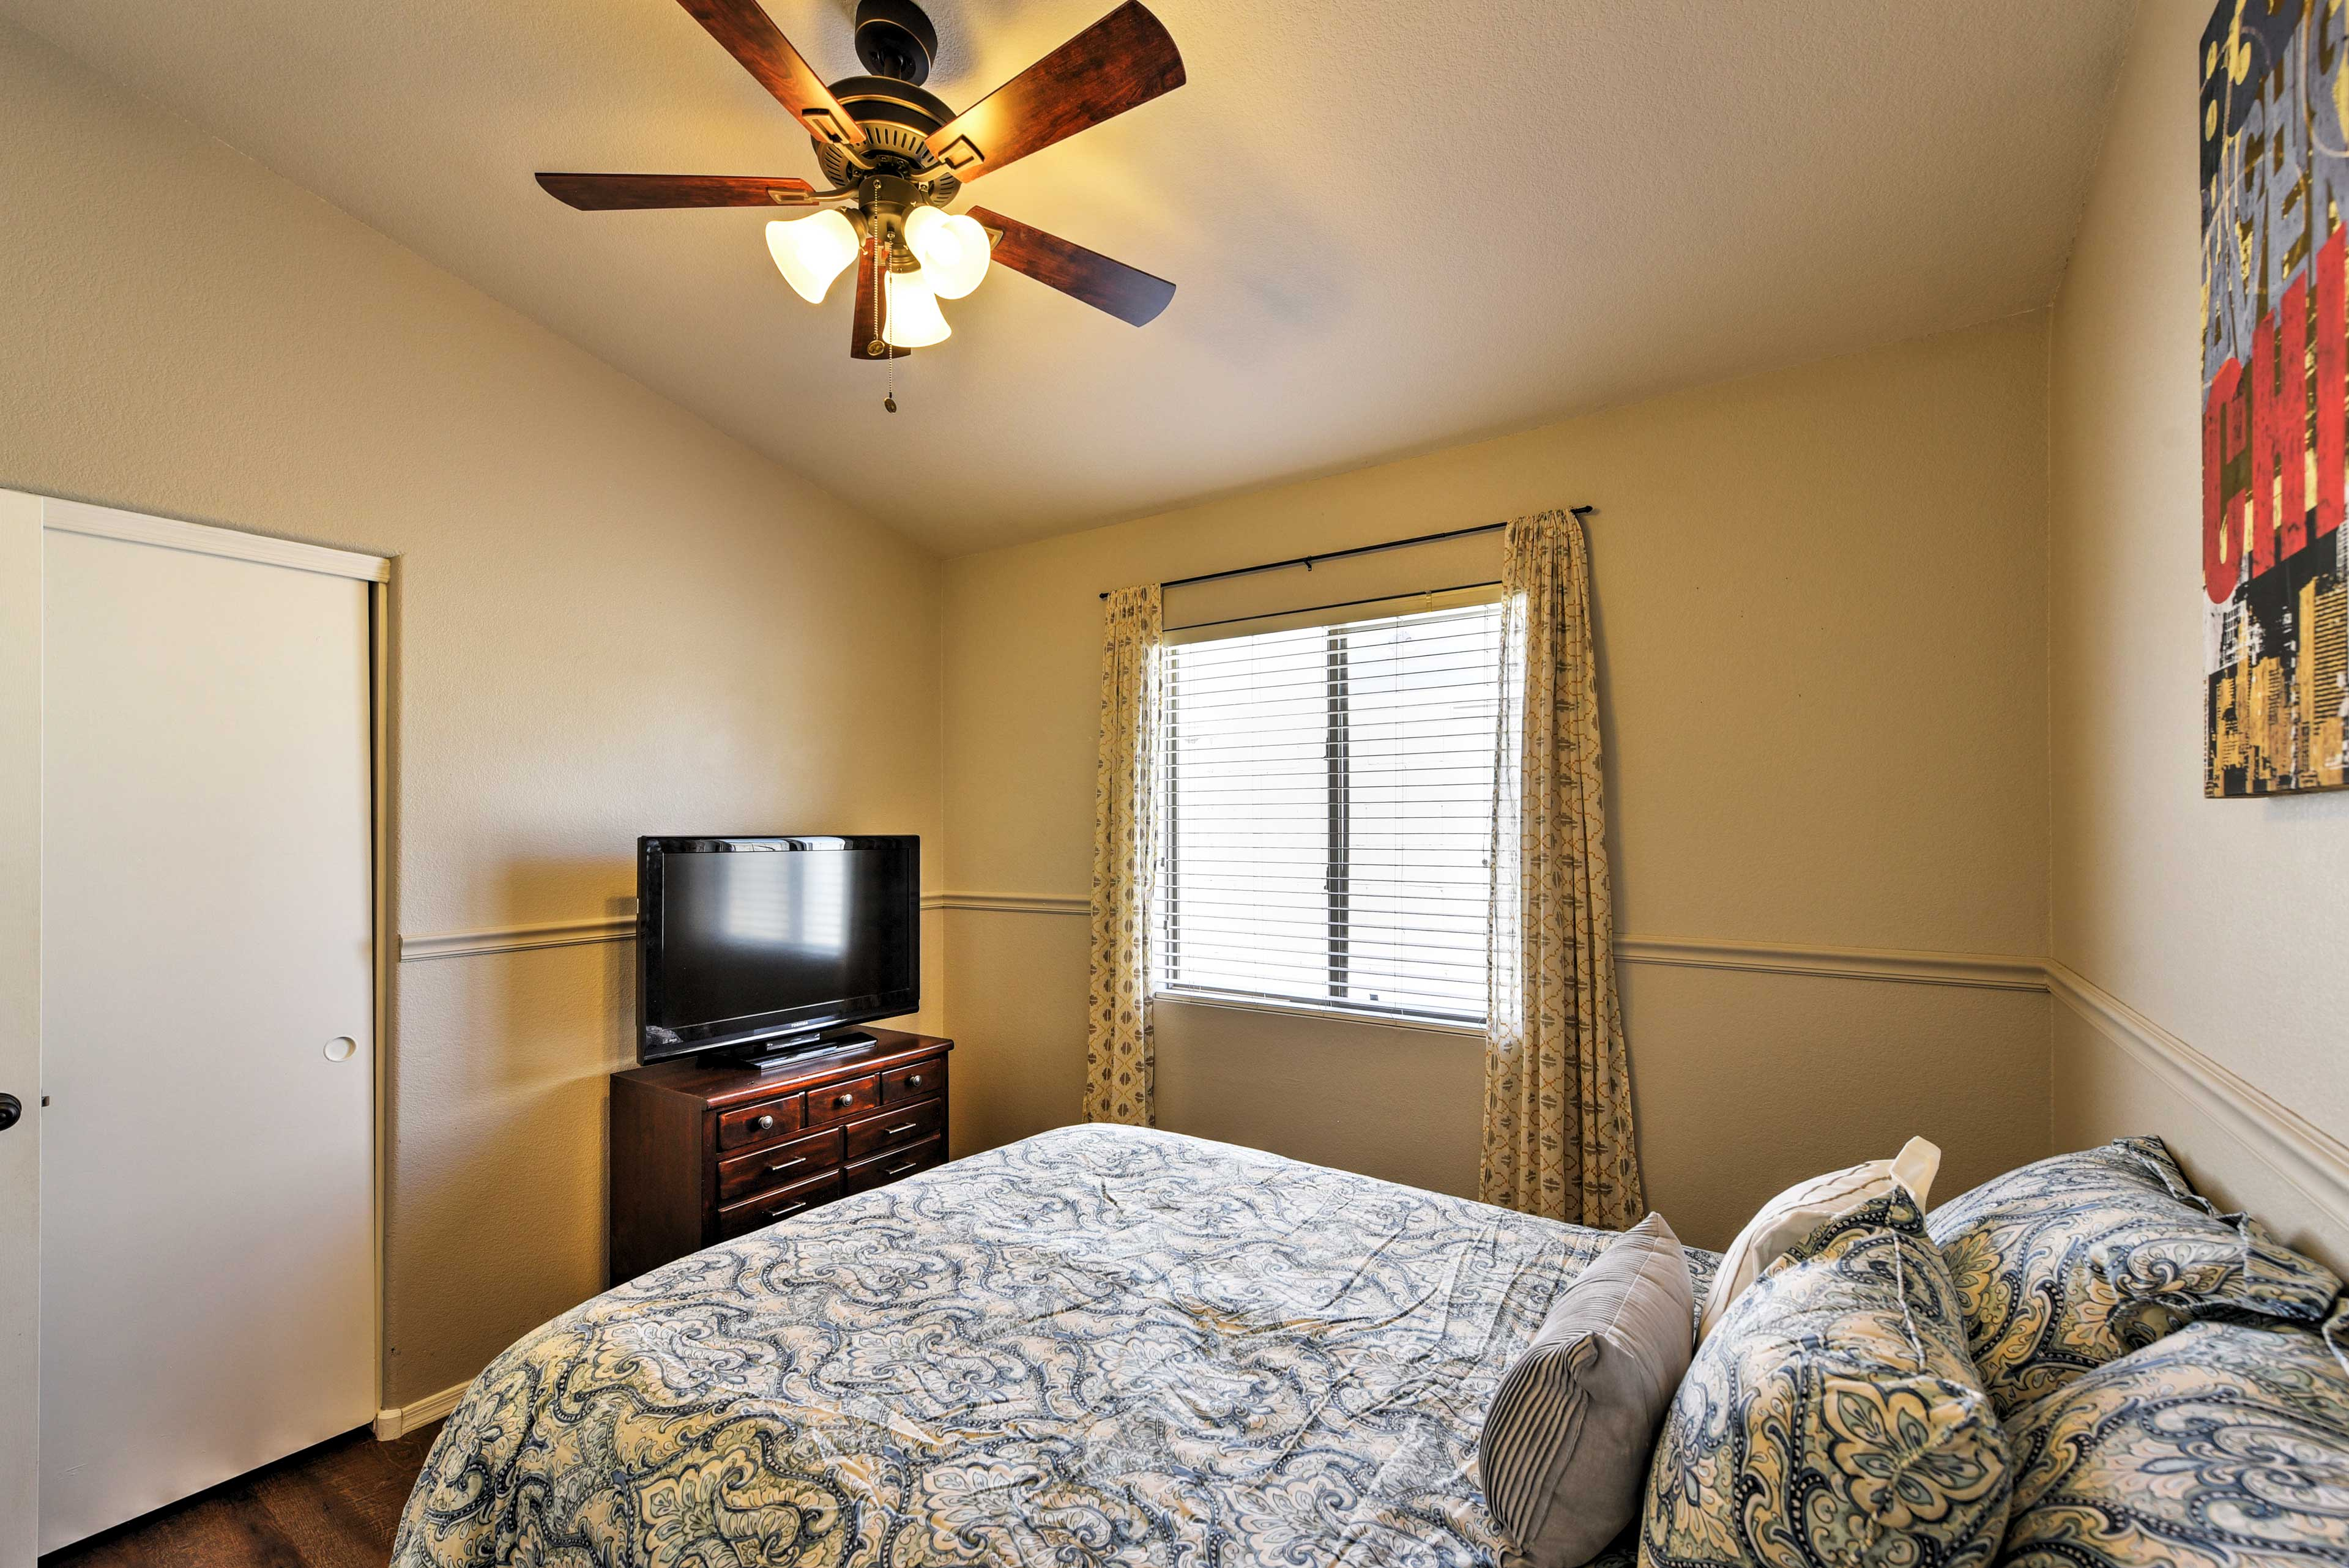 The second bedroom comes complete with a queen bed.